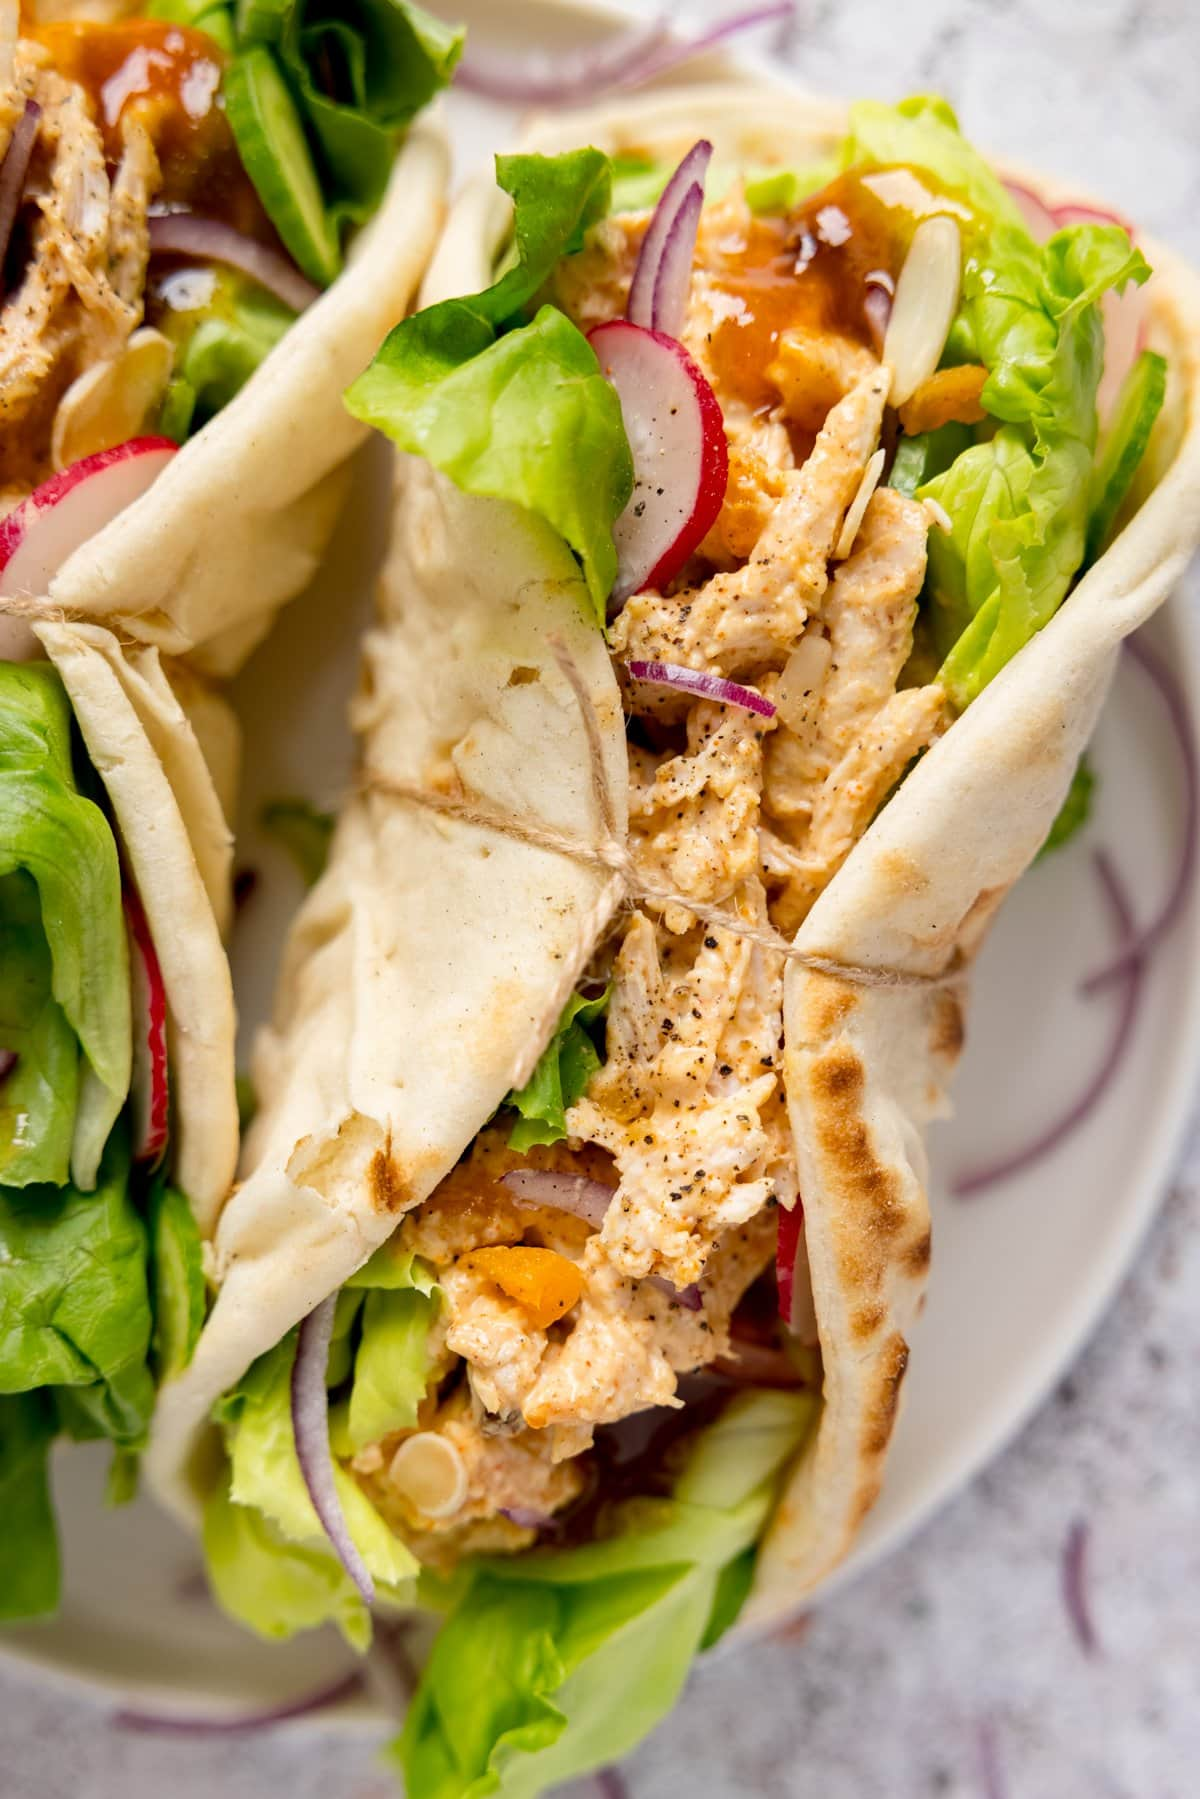 Coronation chicken and salad in a wrap with a piece of string around it. The wrap is on a light plate, next to a further wrap, on a light background.